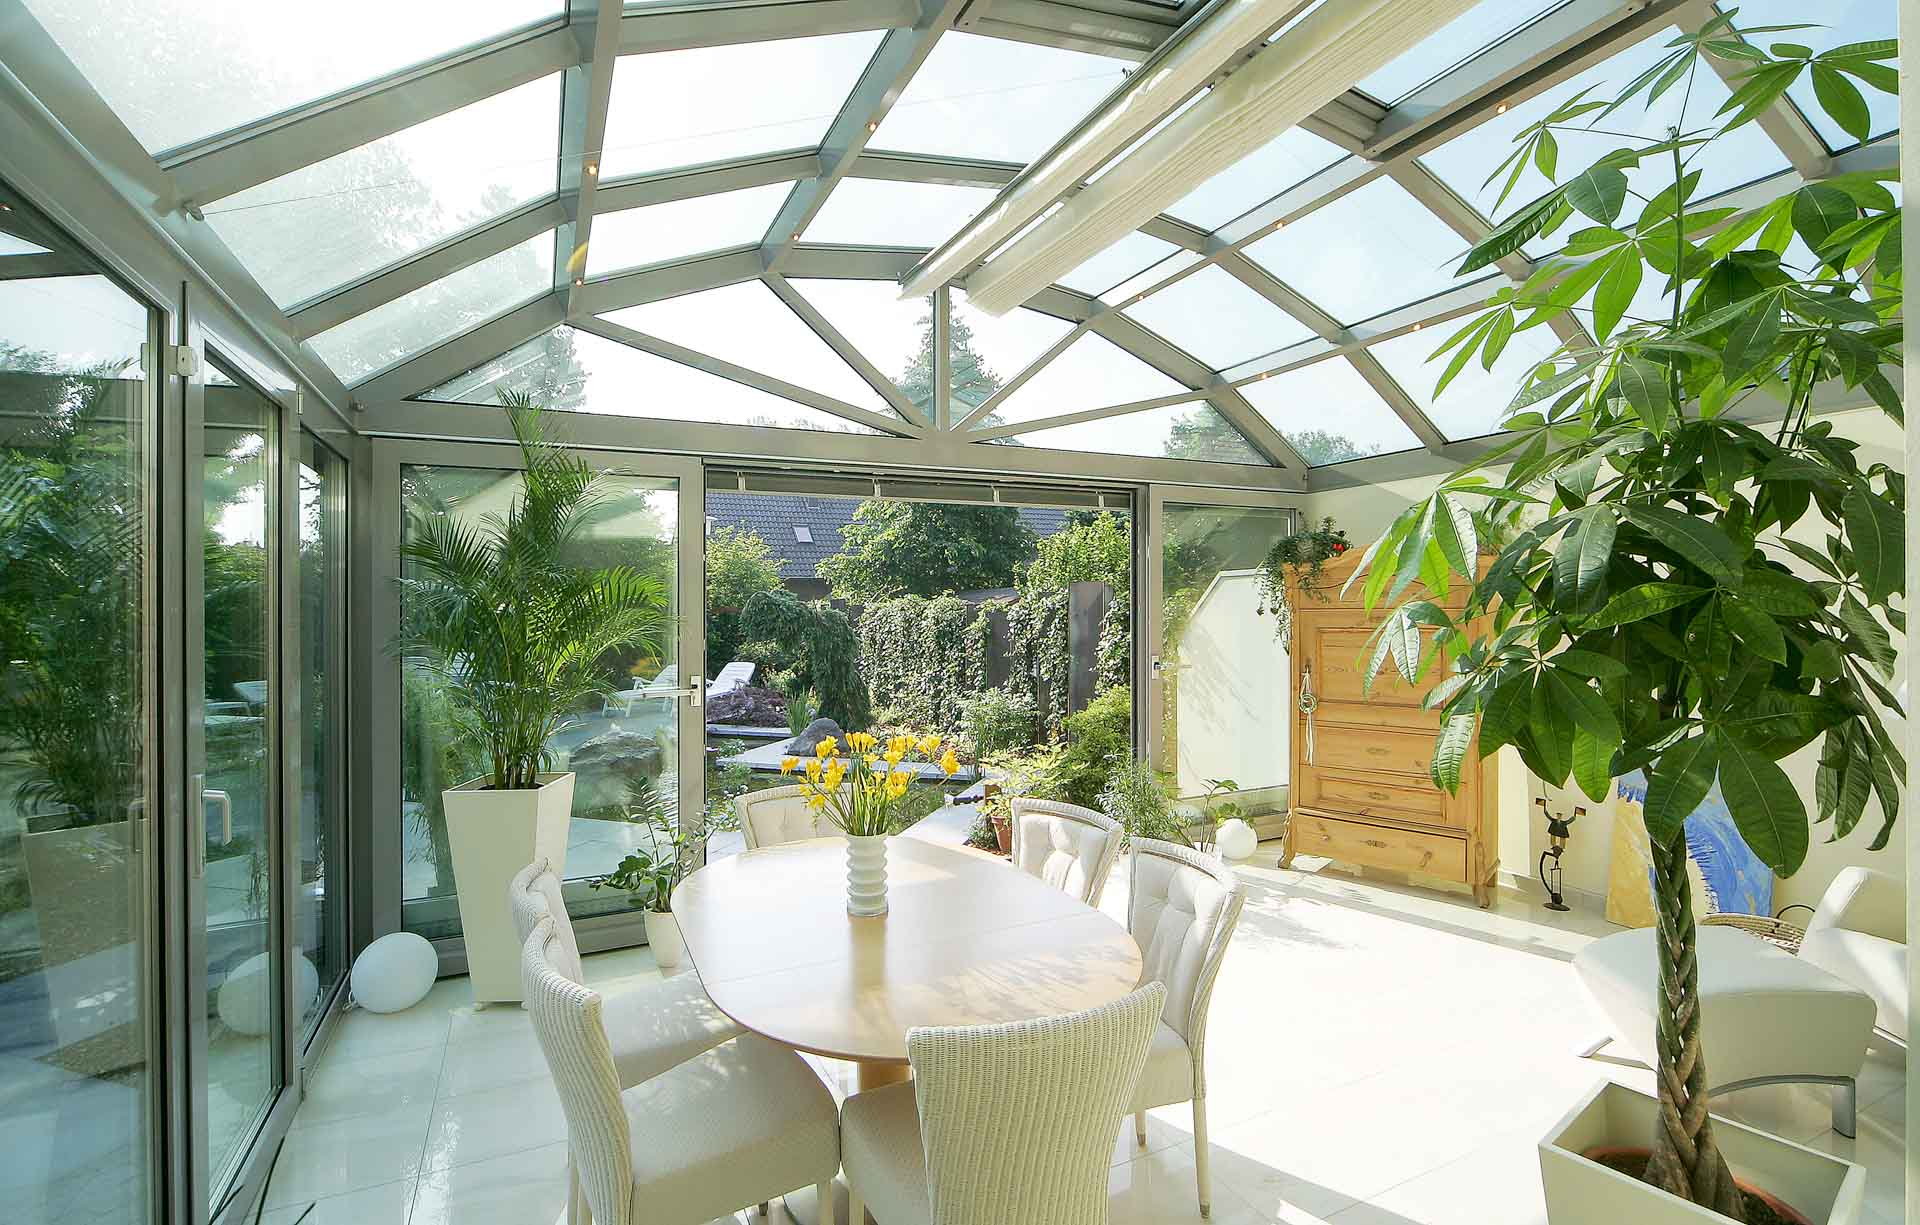 Terraced house conservatory with segmental arched roof in Oberhausen. Airy room height despite compliance with the construction heights at the neighbouring borders - ideal winter garden design for terraced house construction.